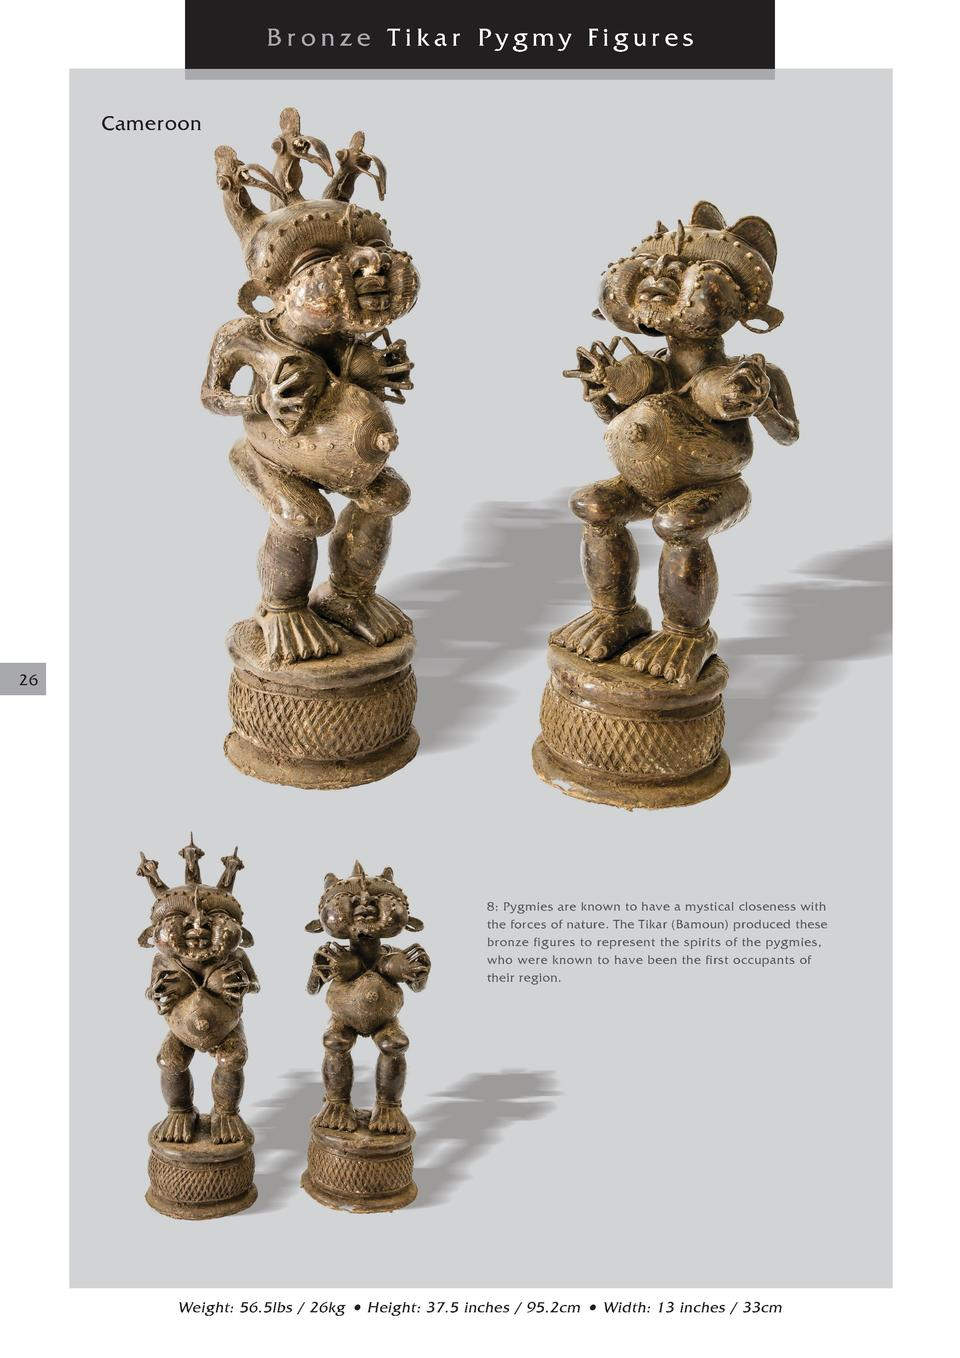 Br onze Tikar Pygmy Figures Cameroon  26  8  Pygmies are known to have a mystical closeness with the forces of nature. The...